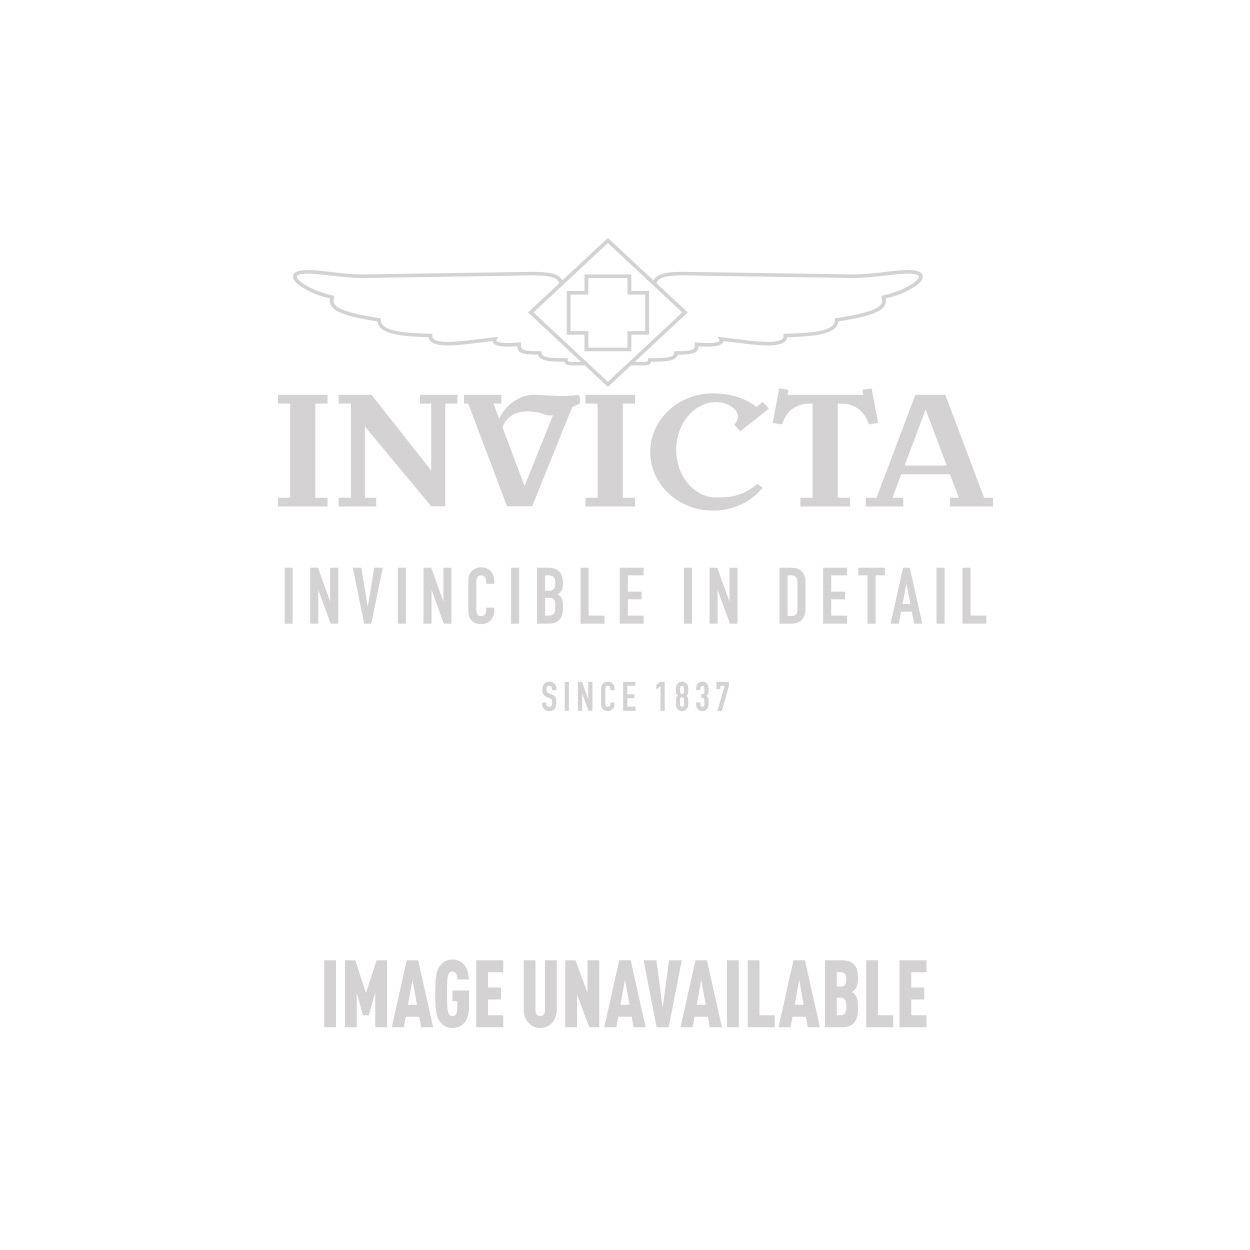 Invicta I-Force Swiss Movement Quartz Watch - Gunmetal case with Khaki tone Leather band - Model 18502